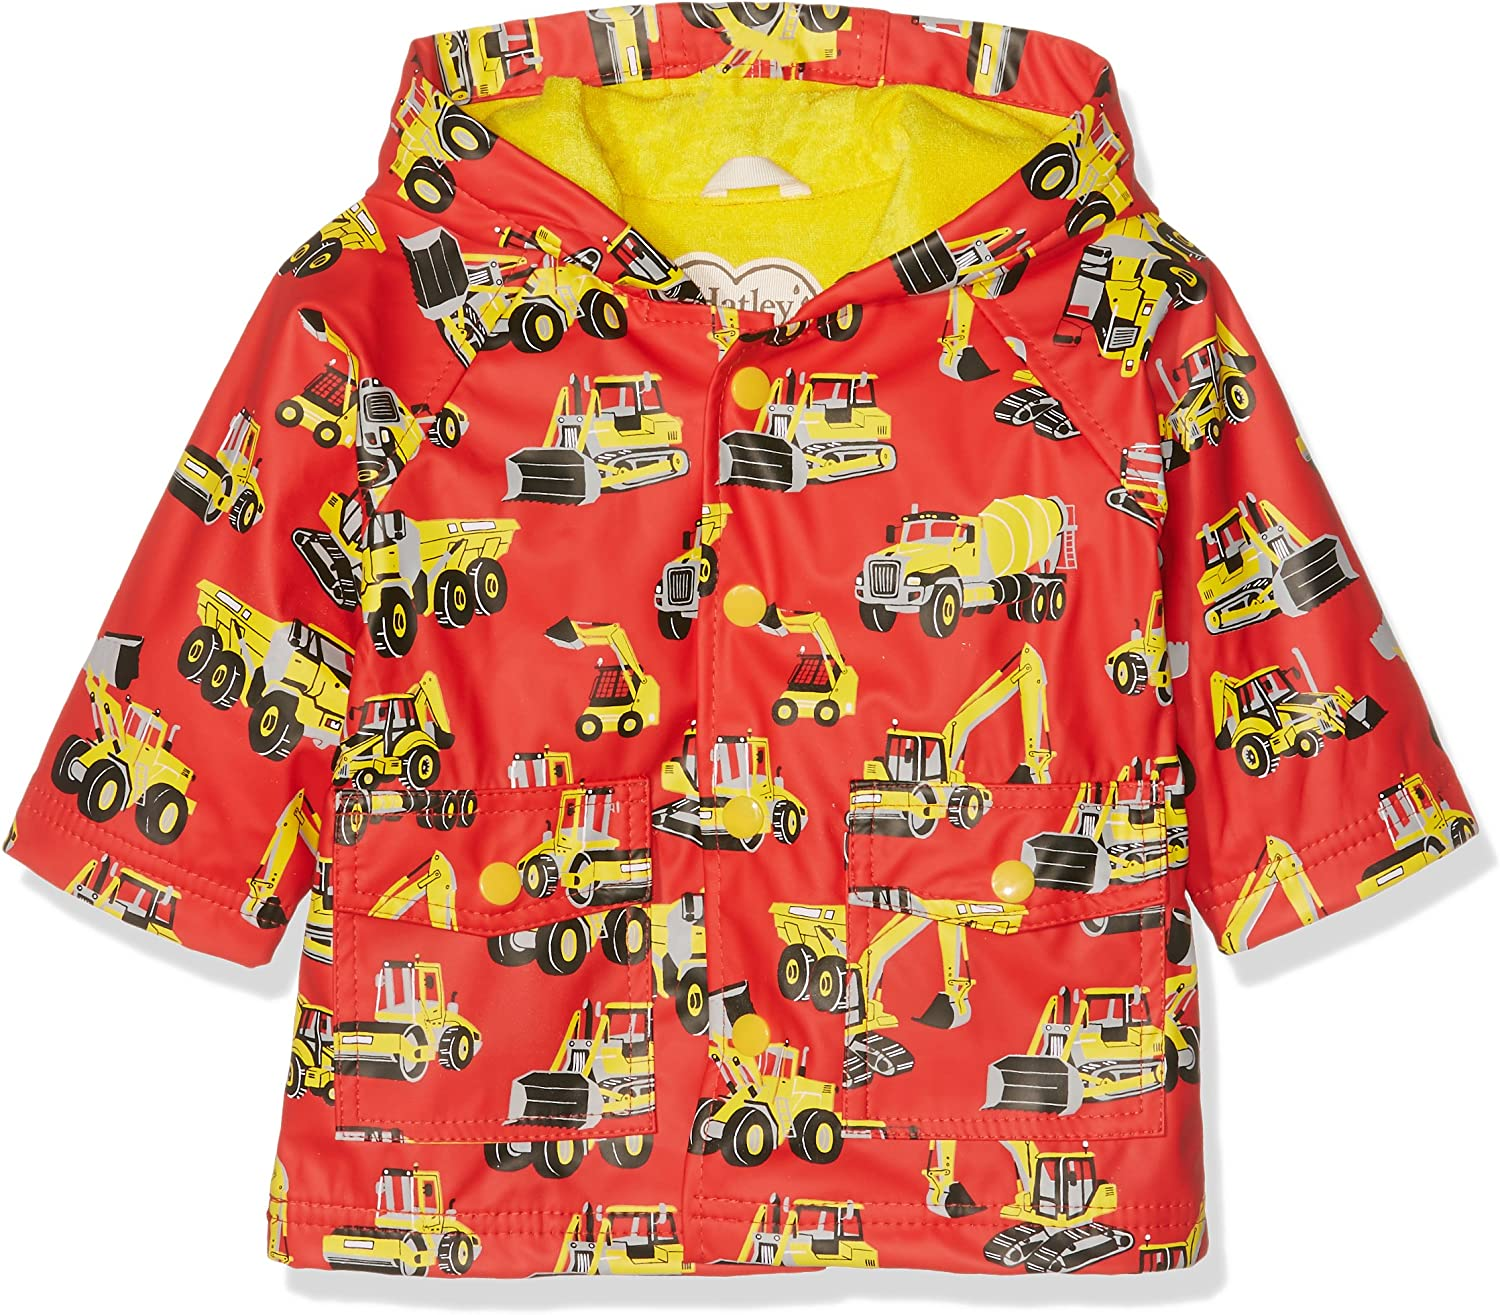 Hatley Boys Printed Rain Jacket Raincoat